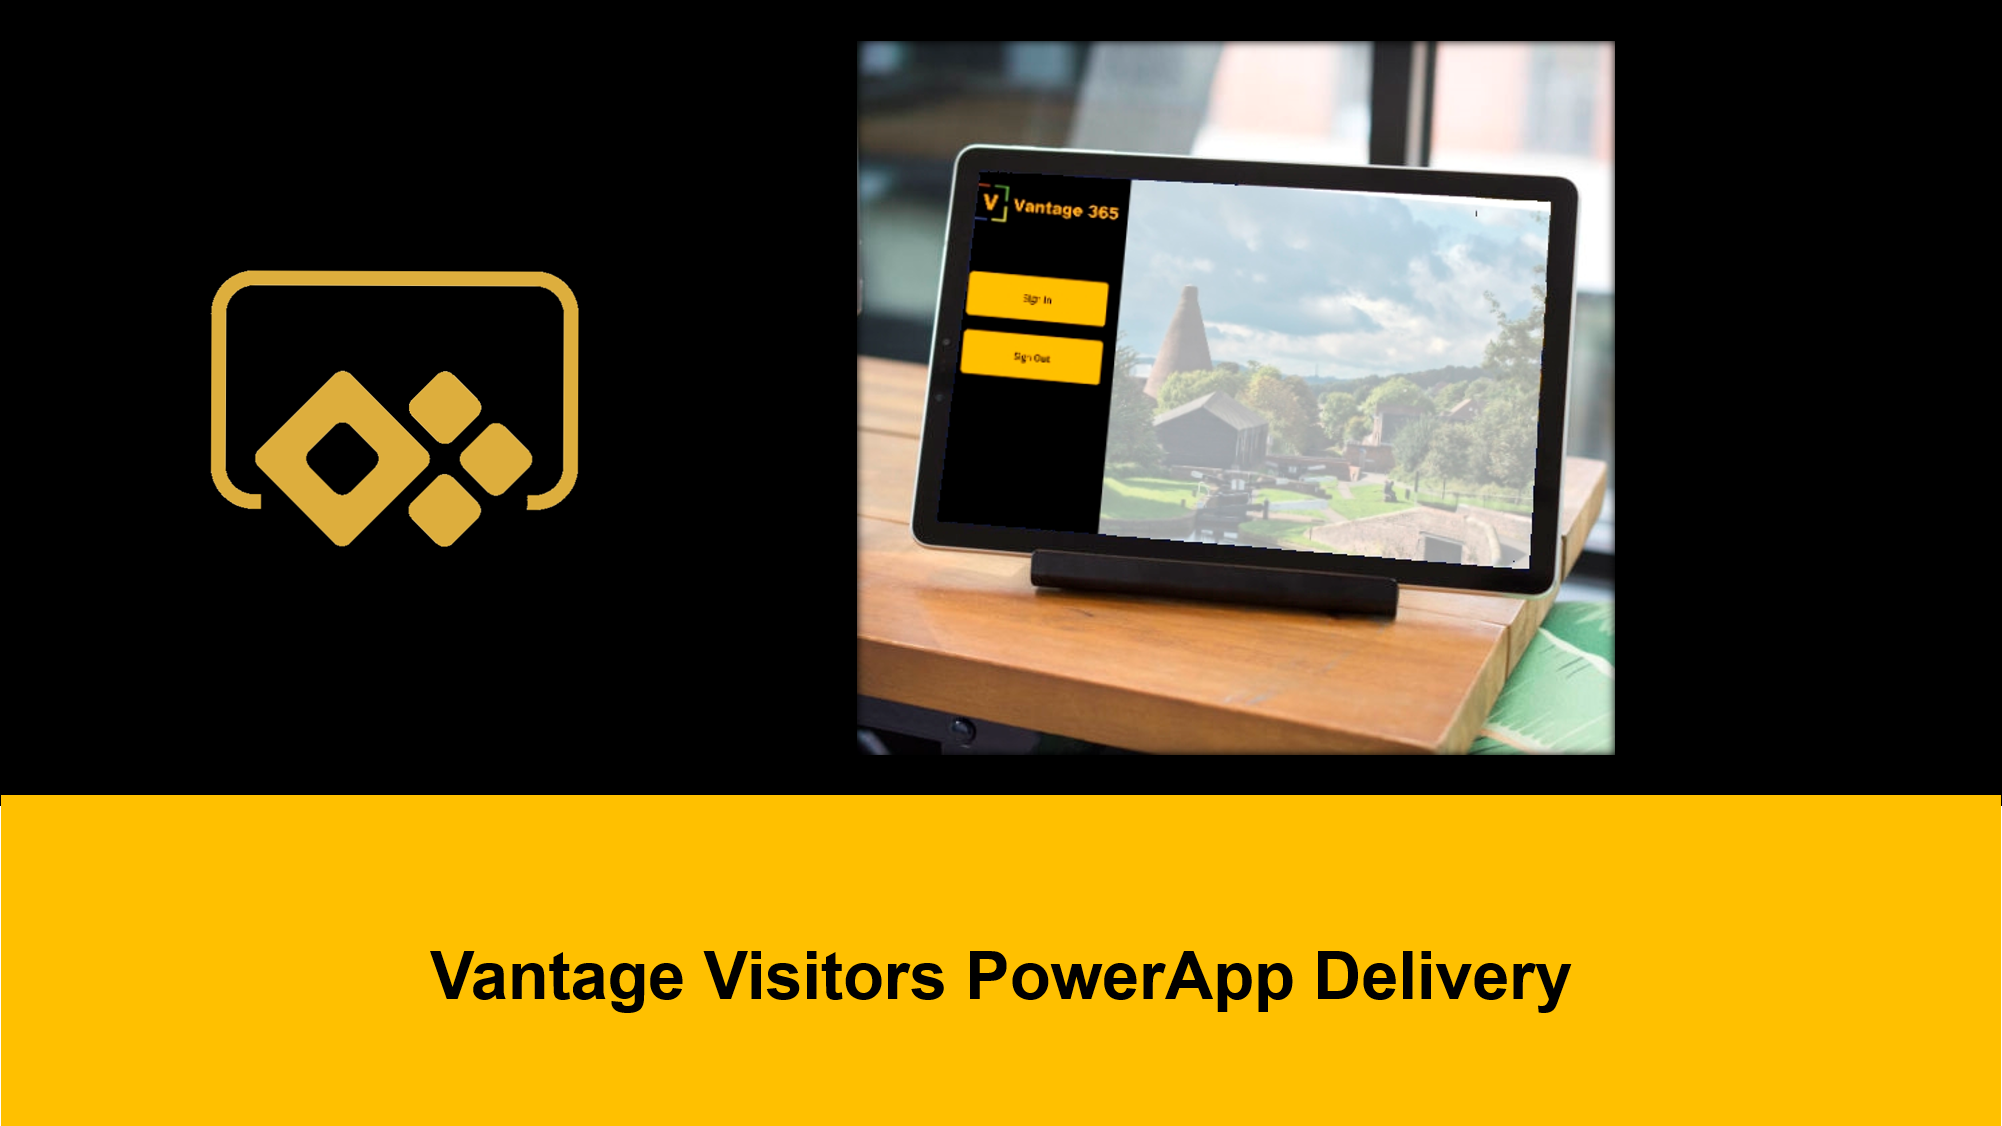 I will deploy the Vantage Visitors PowerApp to your tenancy